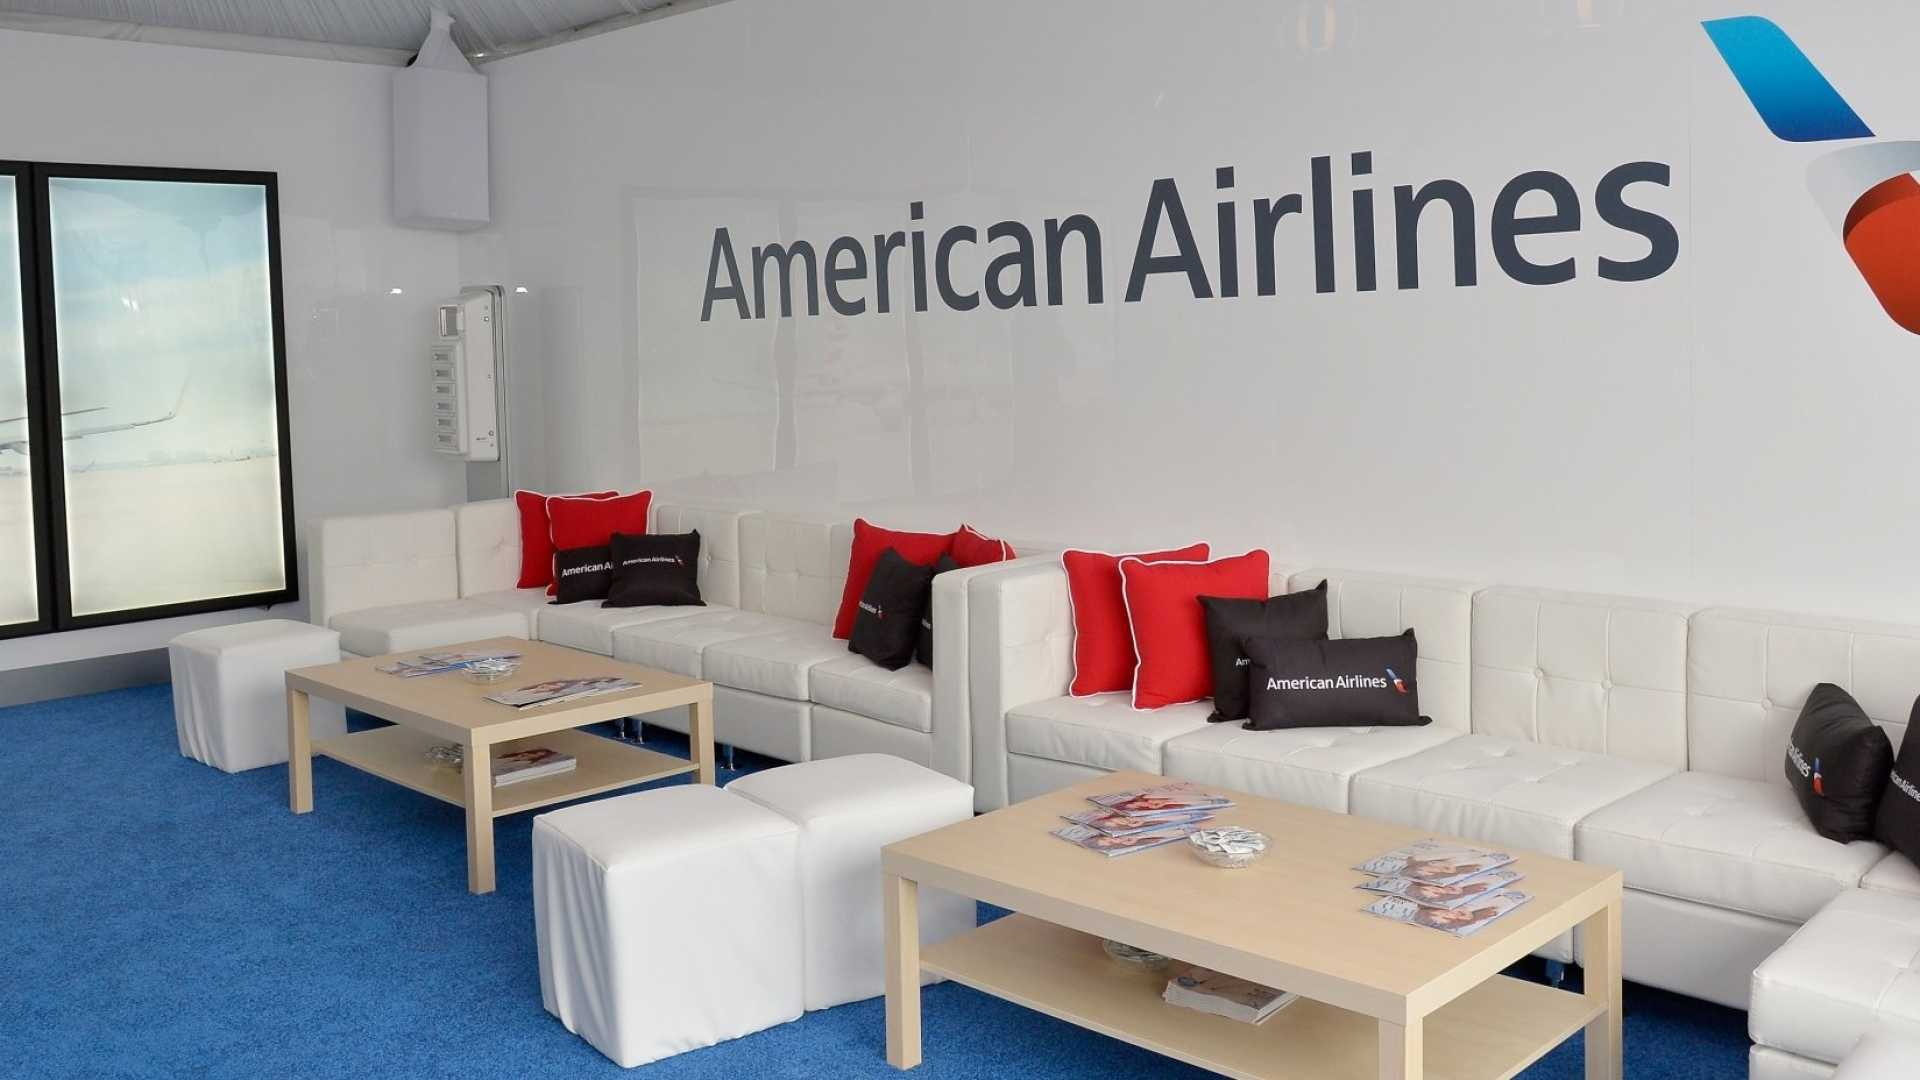 A 16-Year-Old Was Angry at Being Denied Access to an American Airlines Lounge. A 64-Year-Old Woman Wrote the Teen a Brilliant Note